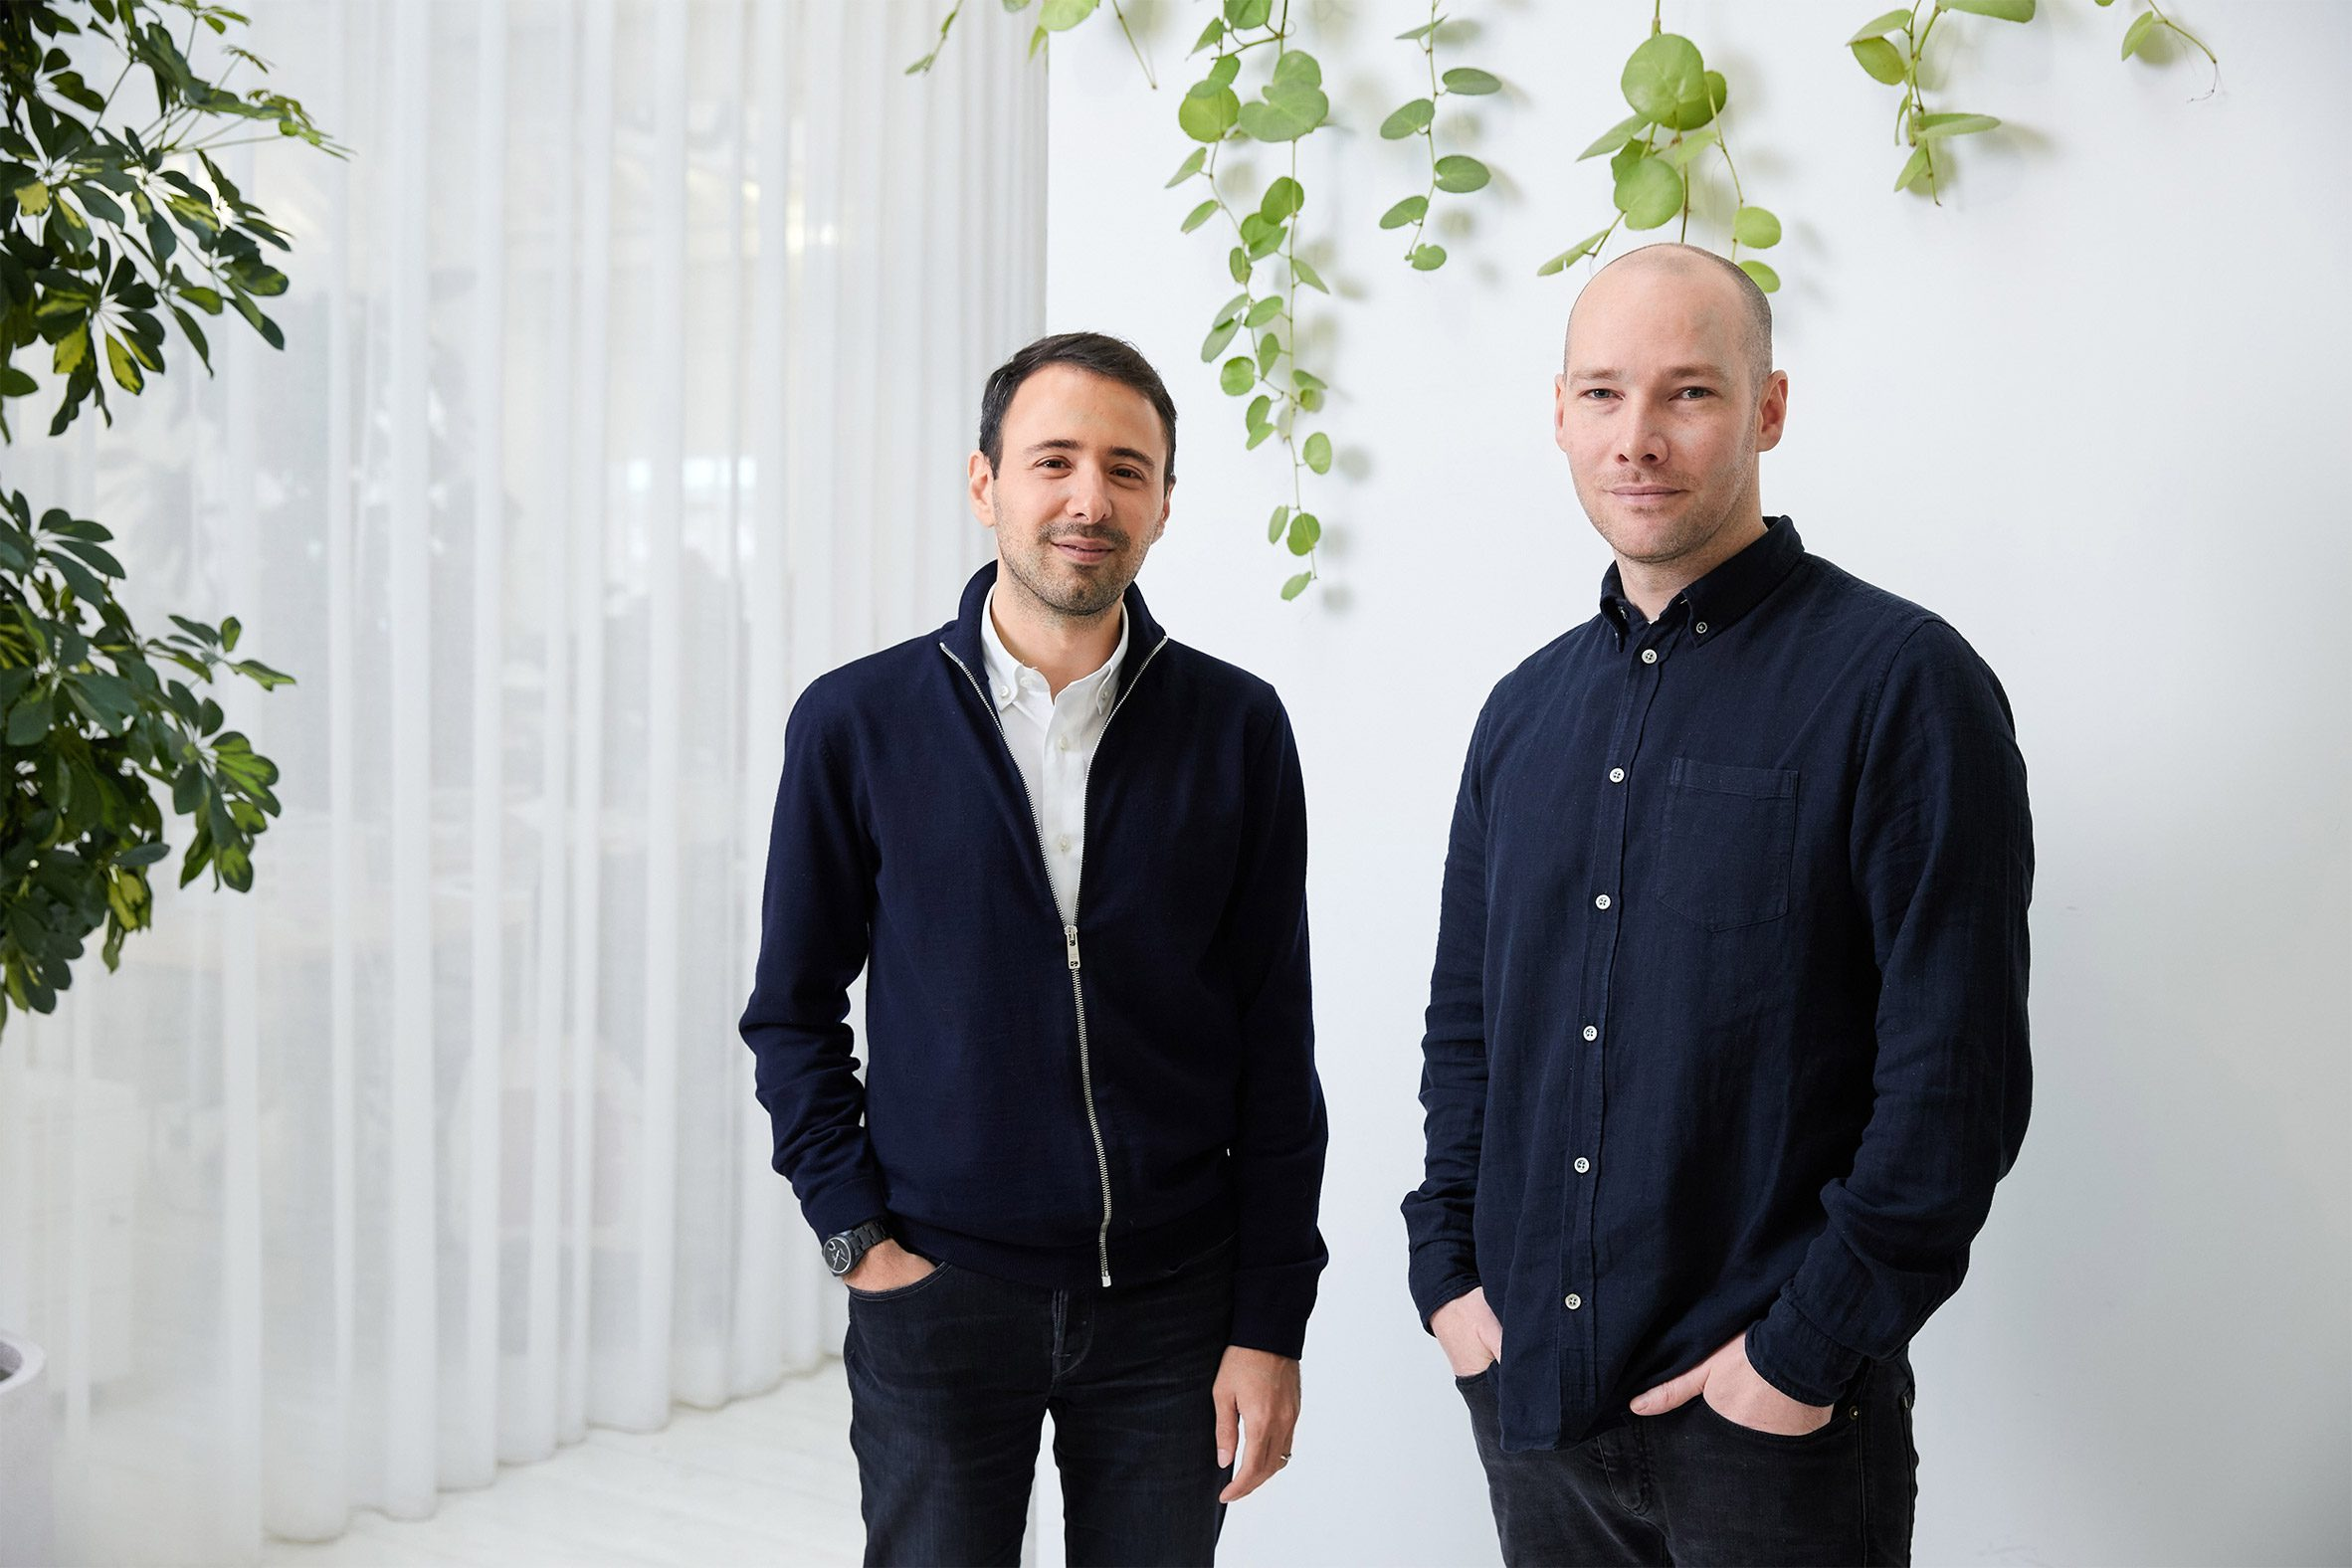 Founders of Clippings